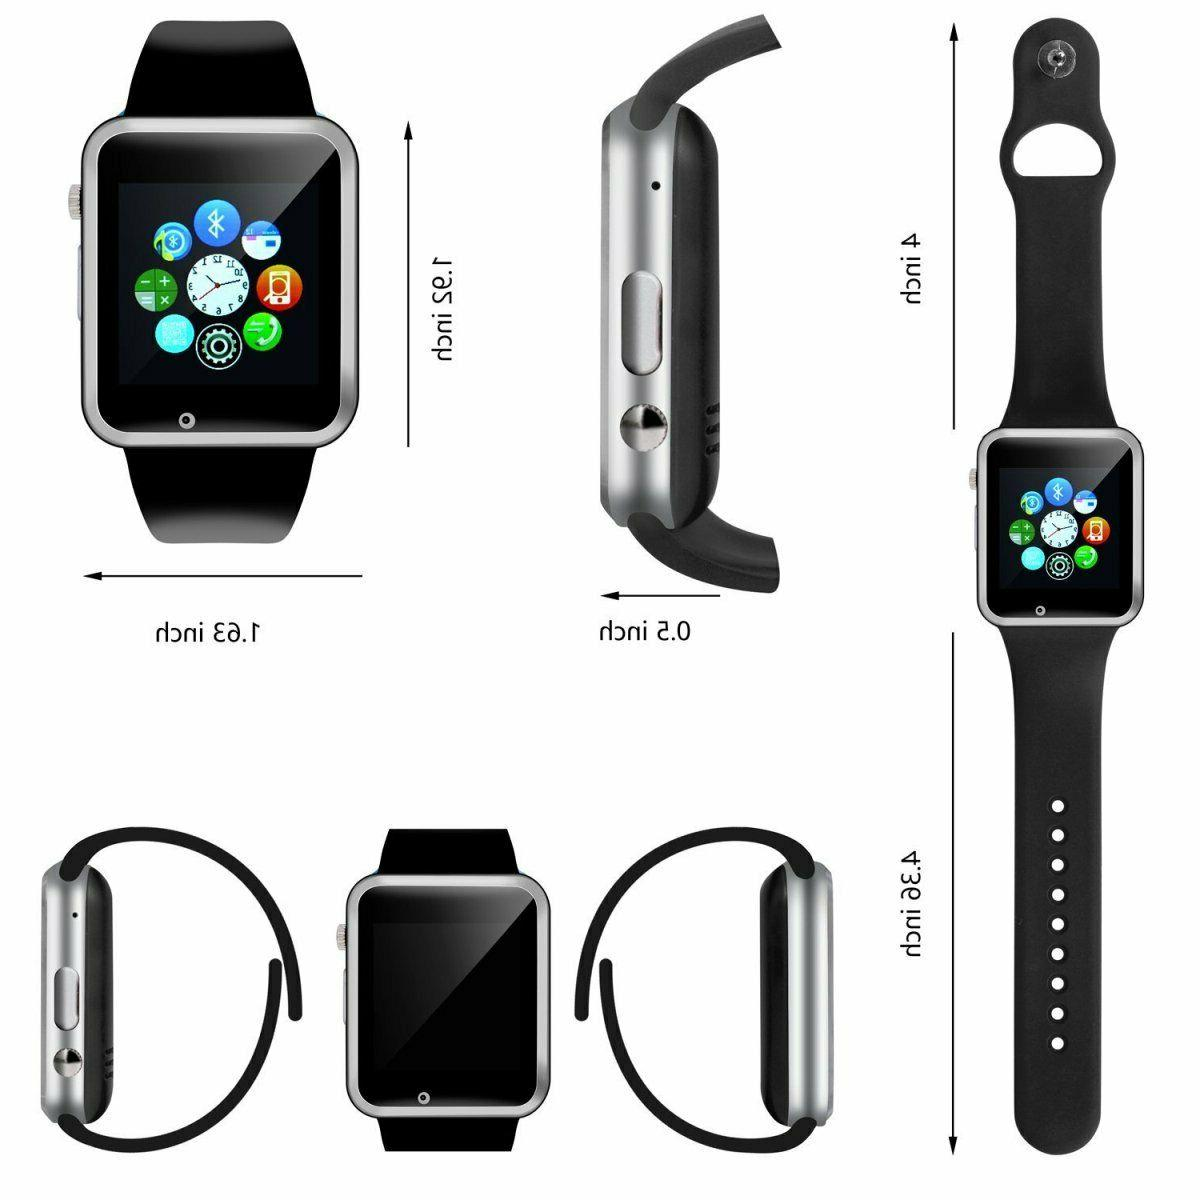 G Waterproof Bluetooth Watch iphone IOS Android LG